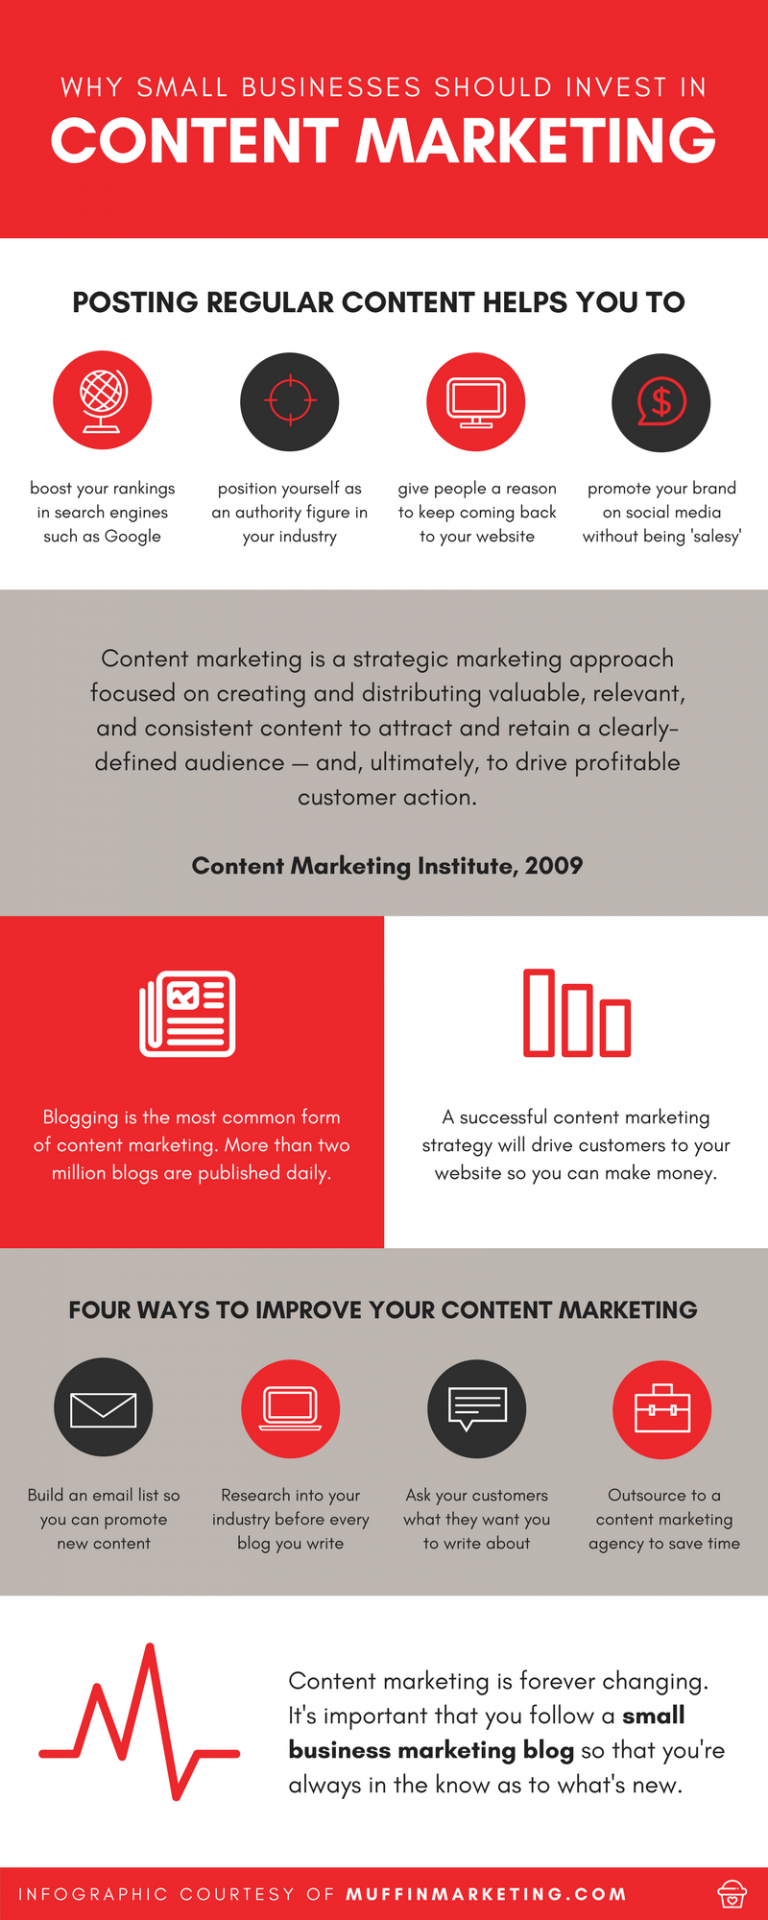 Why Small Businesses Need Content Marketing [Infographic